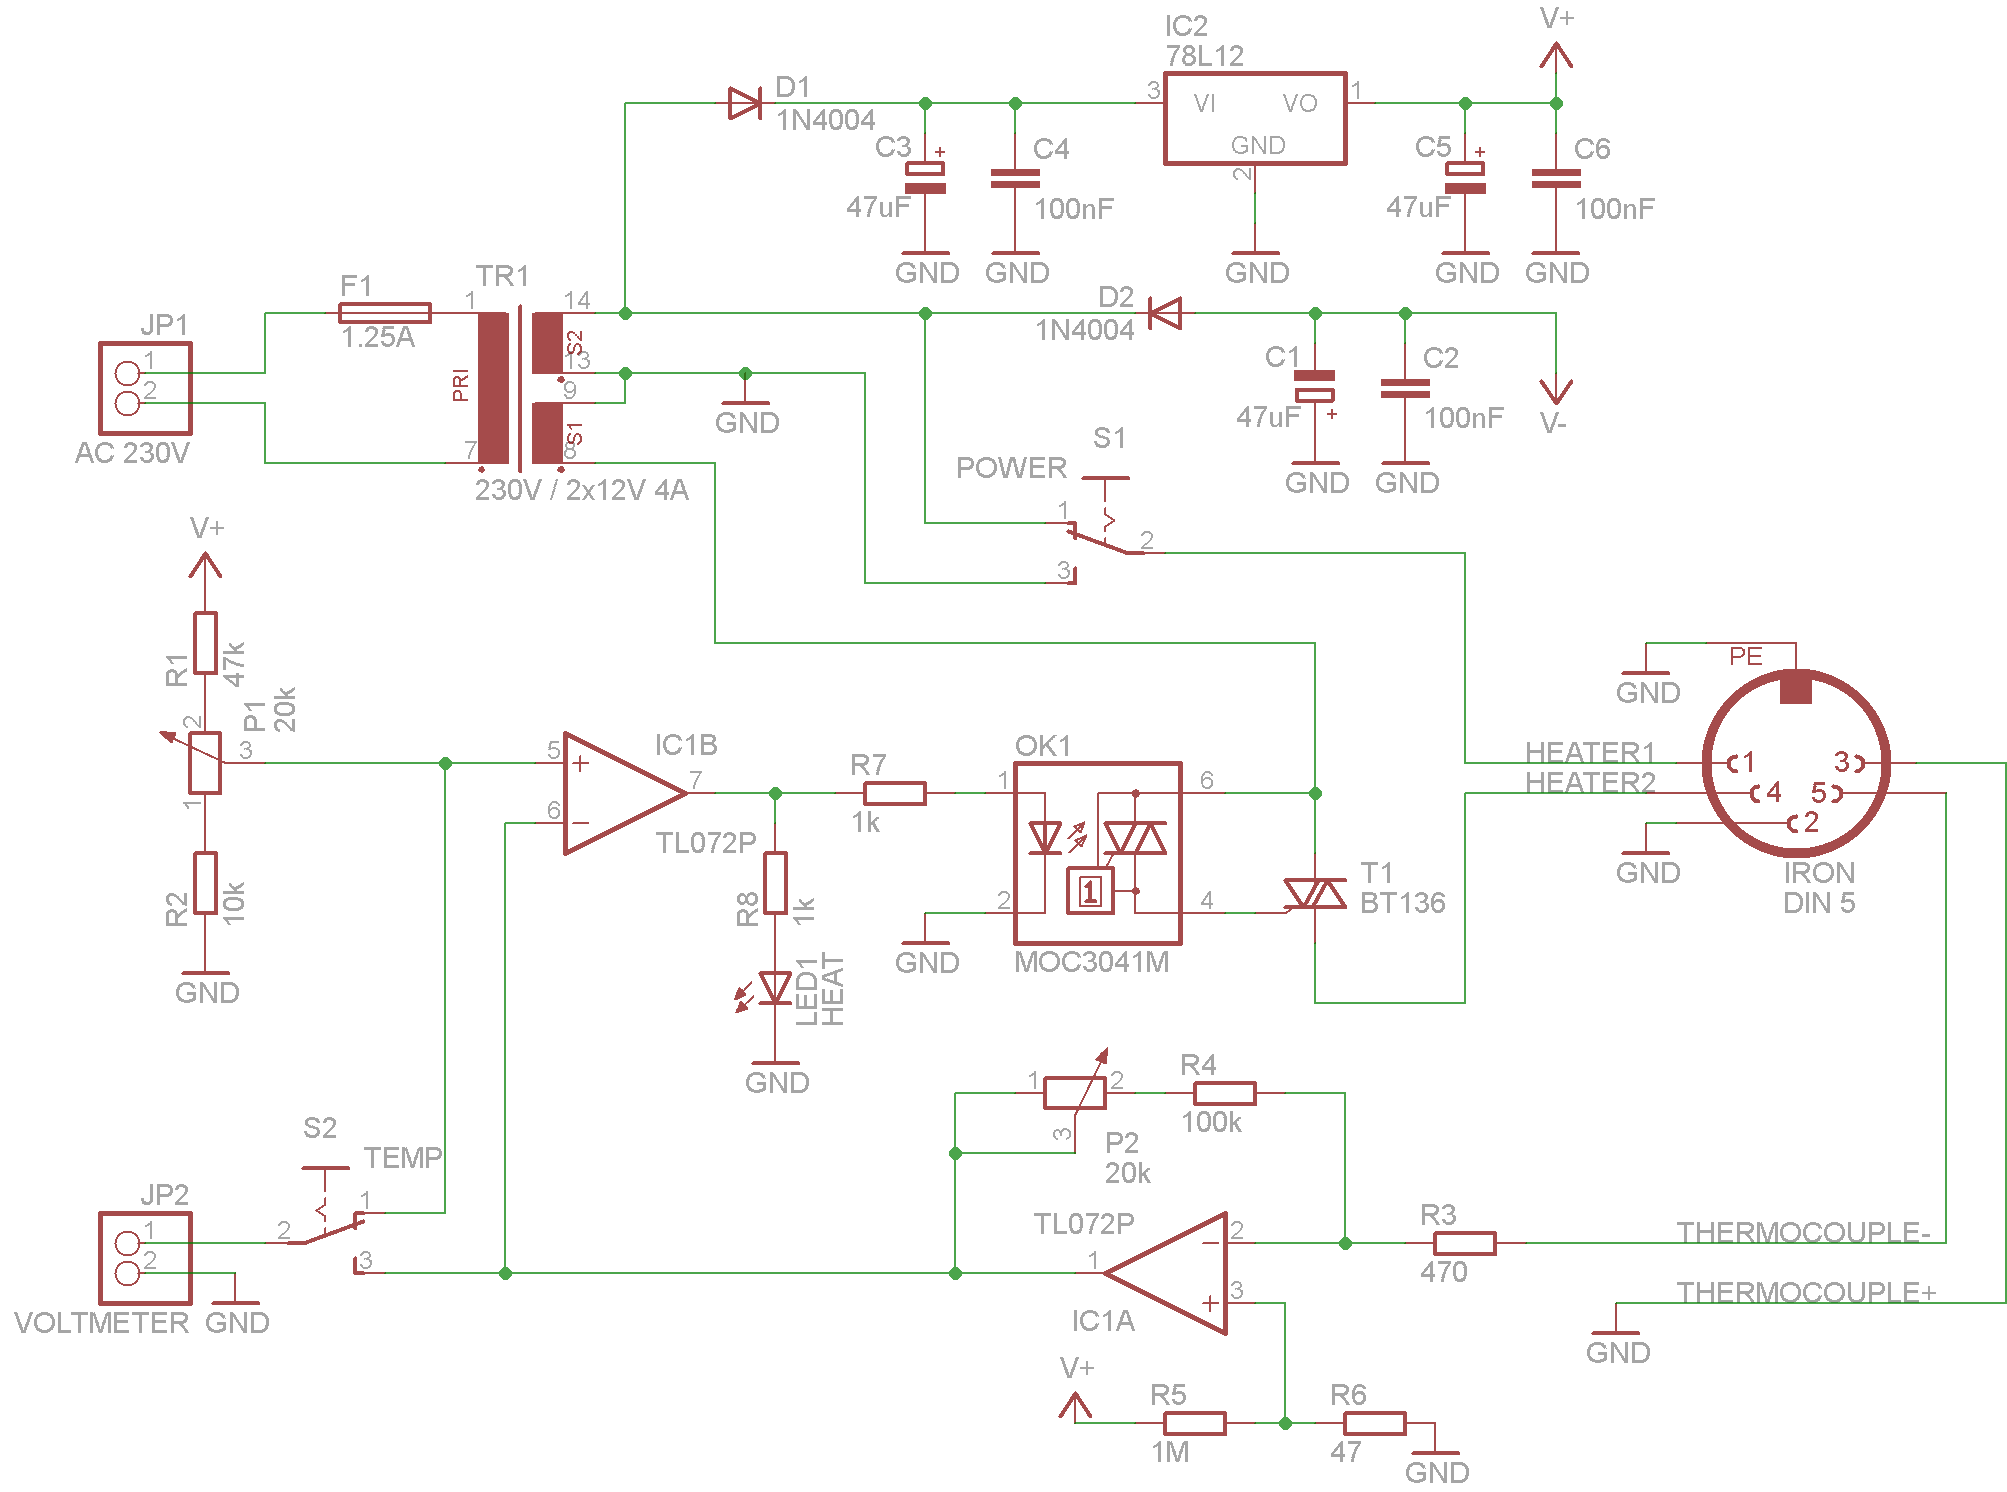 Remarkable Diagram Also Soldering Iron As Well Electric Iron Circuit Diagram Wiring Cloud Geisbieswglorg